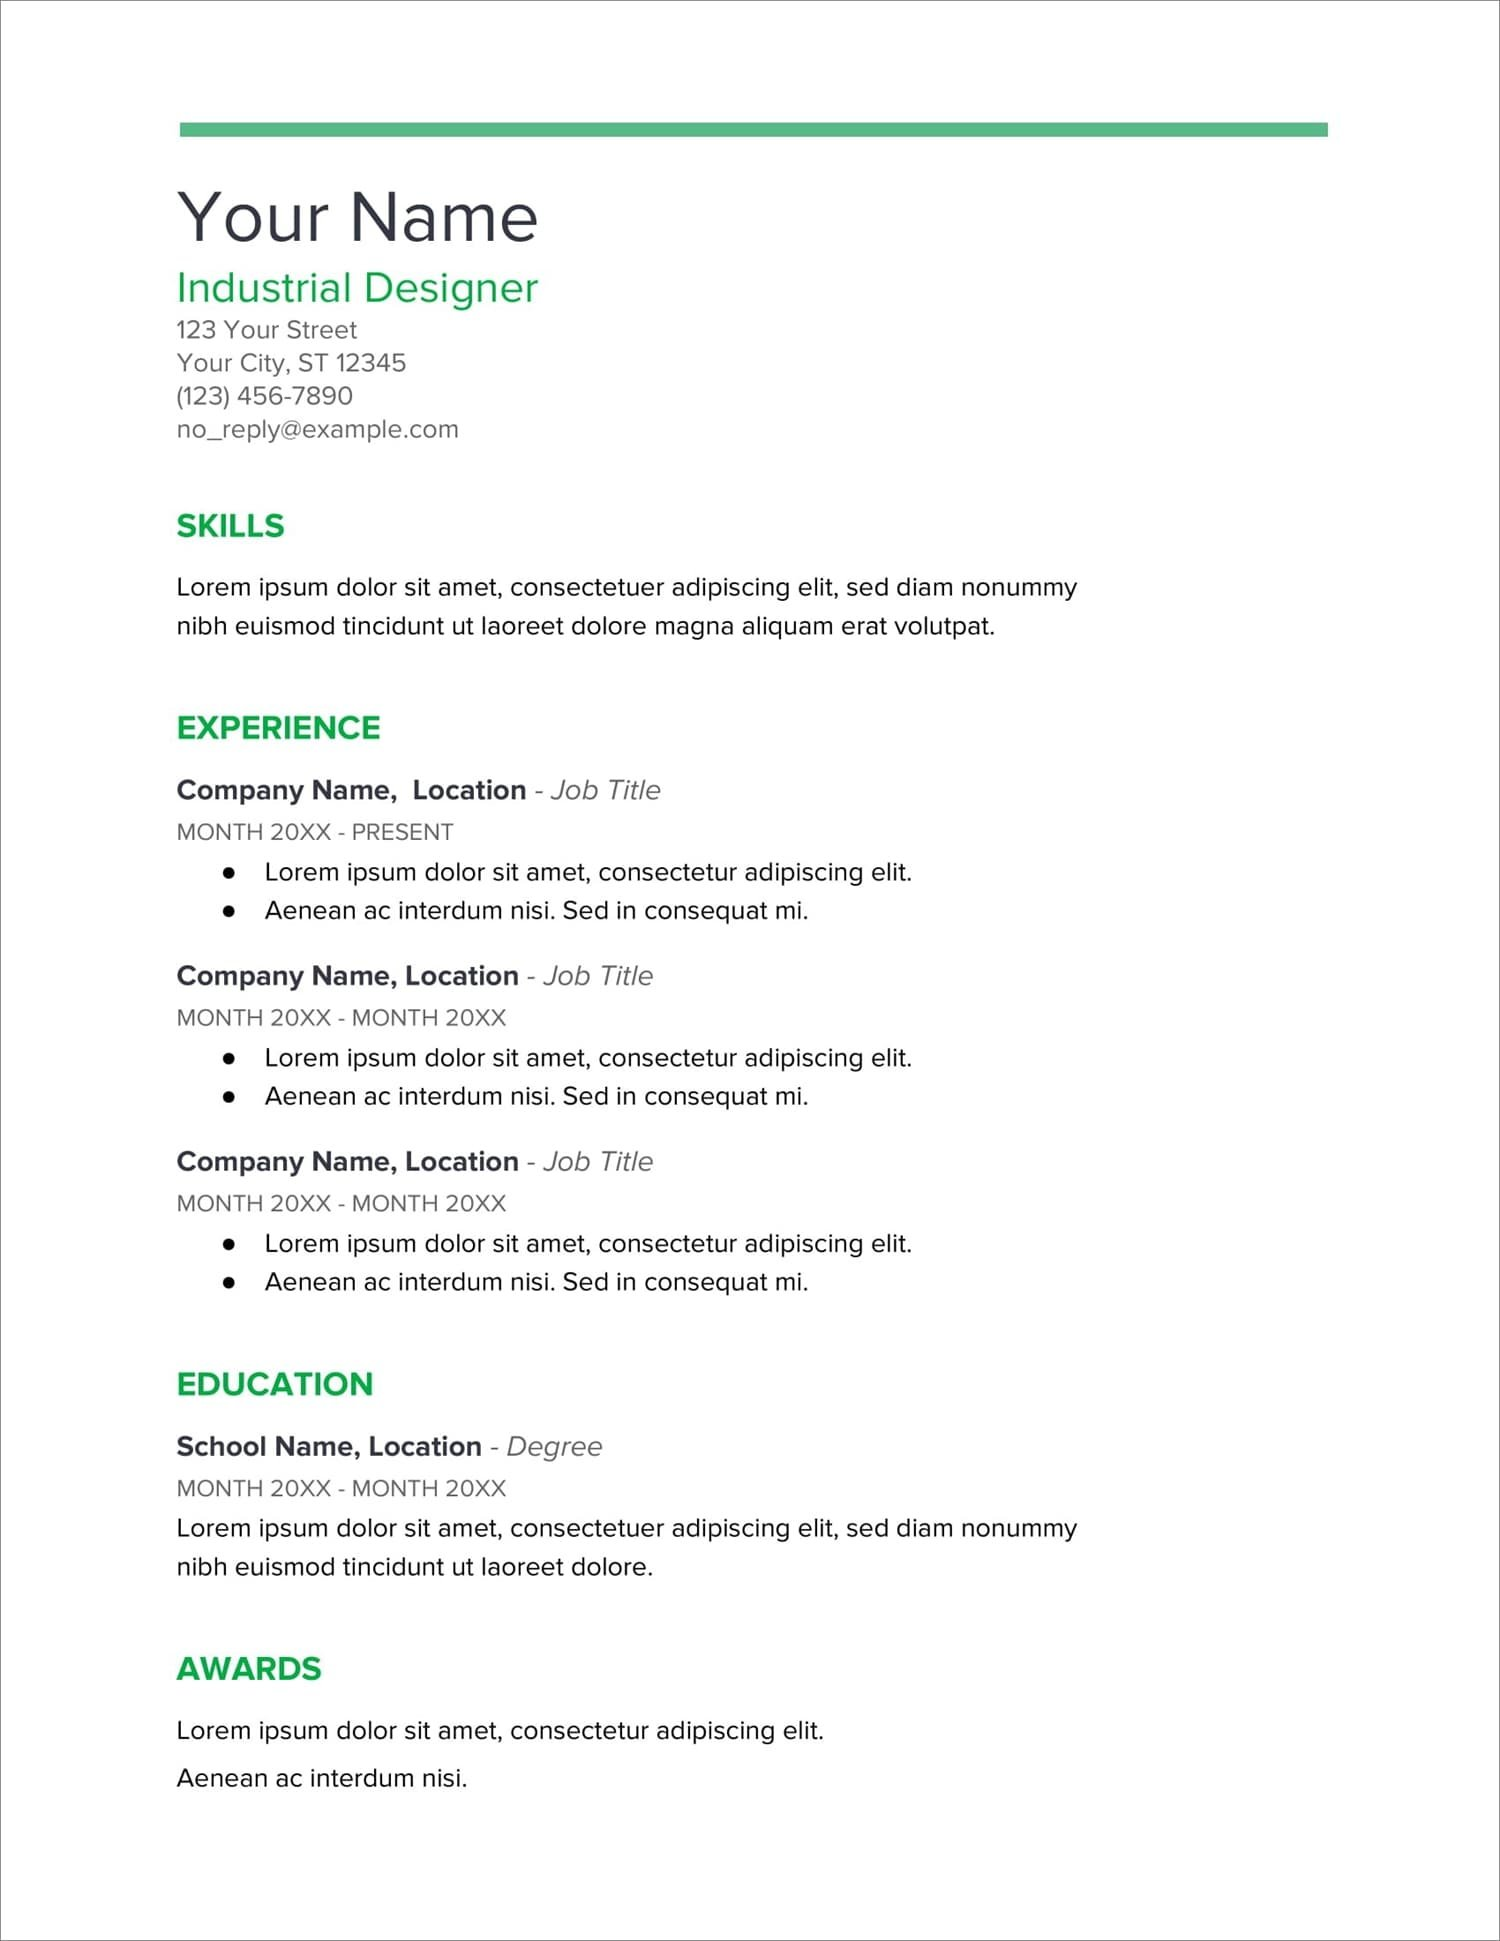 free resume templates for to now job application new best software engineer calling after Resume Free Resume For Job Application